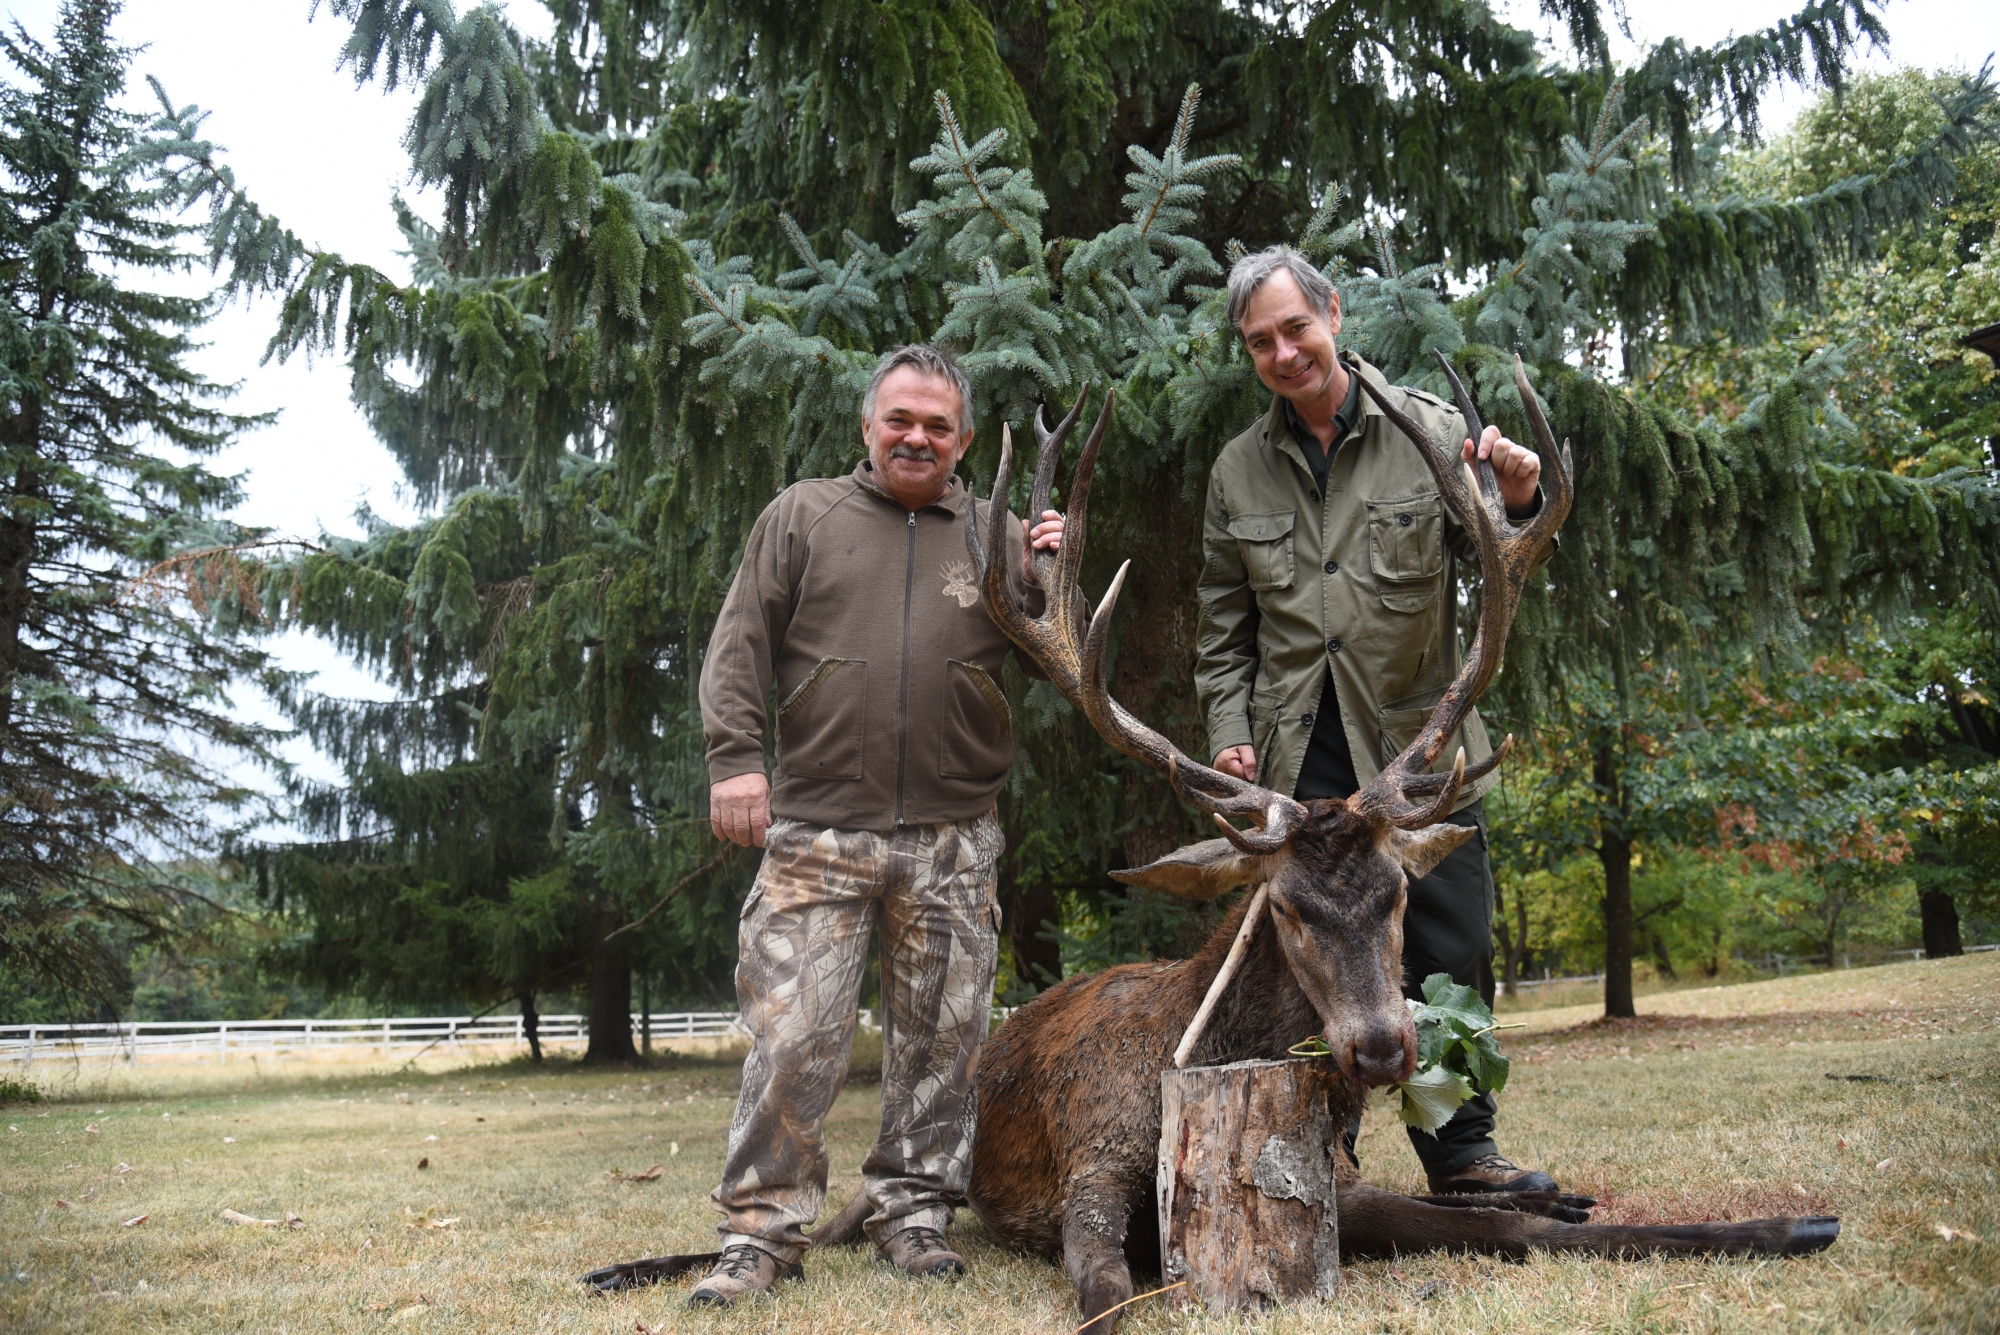 Hunt Red Deer in Bulgaria